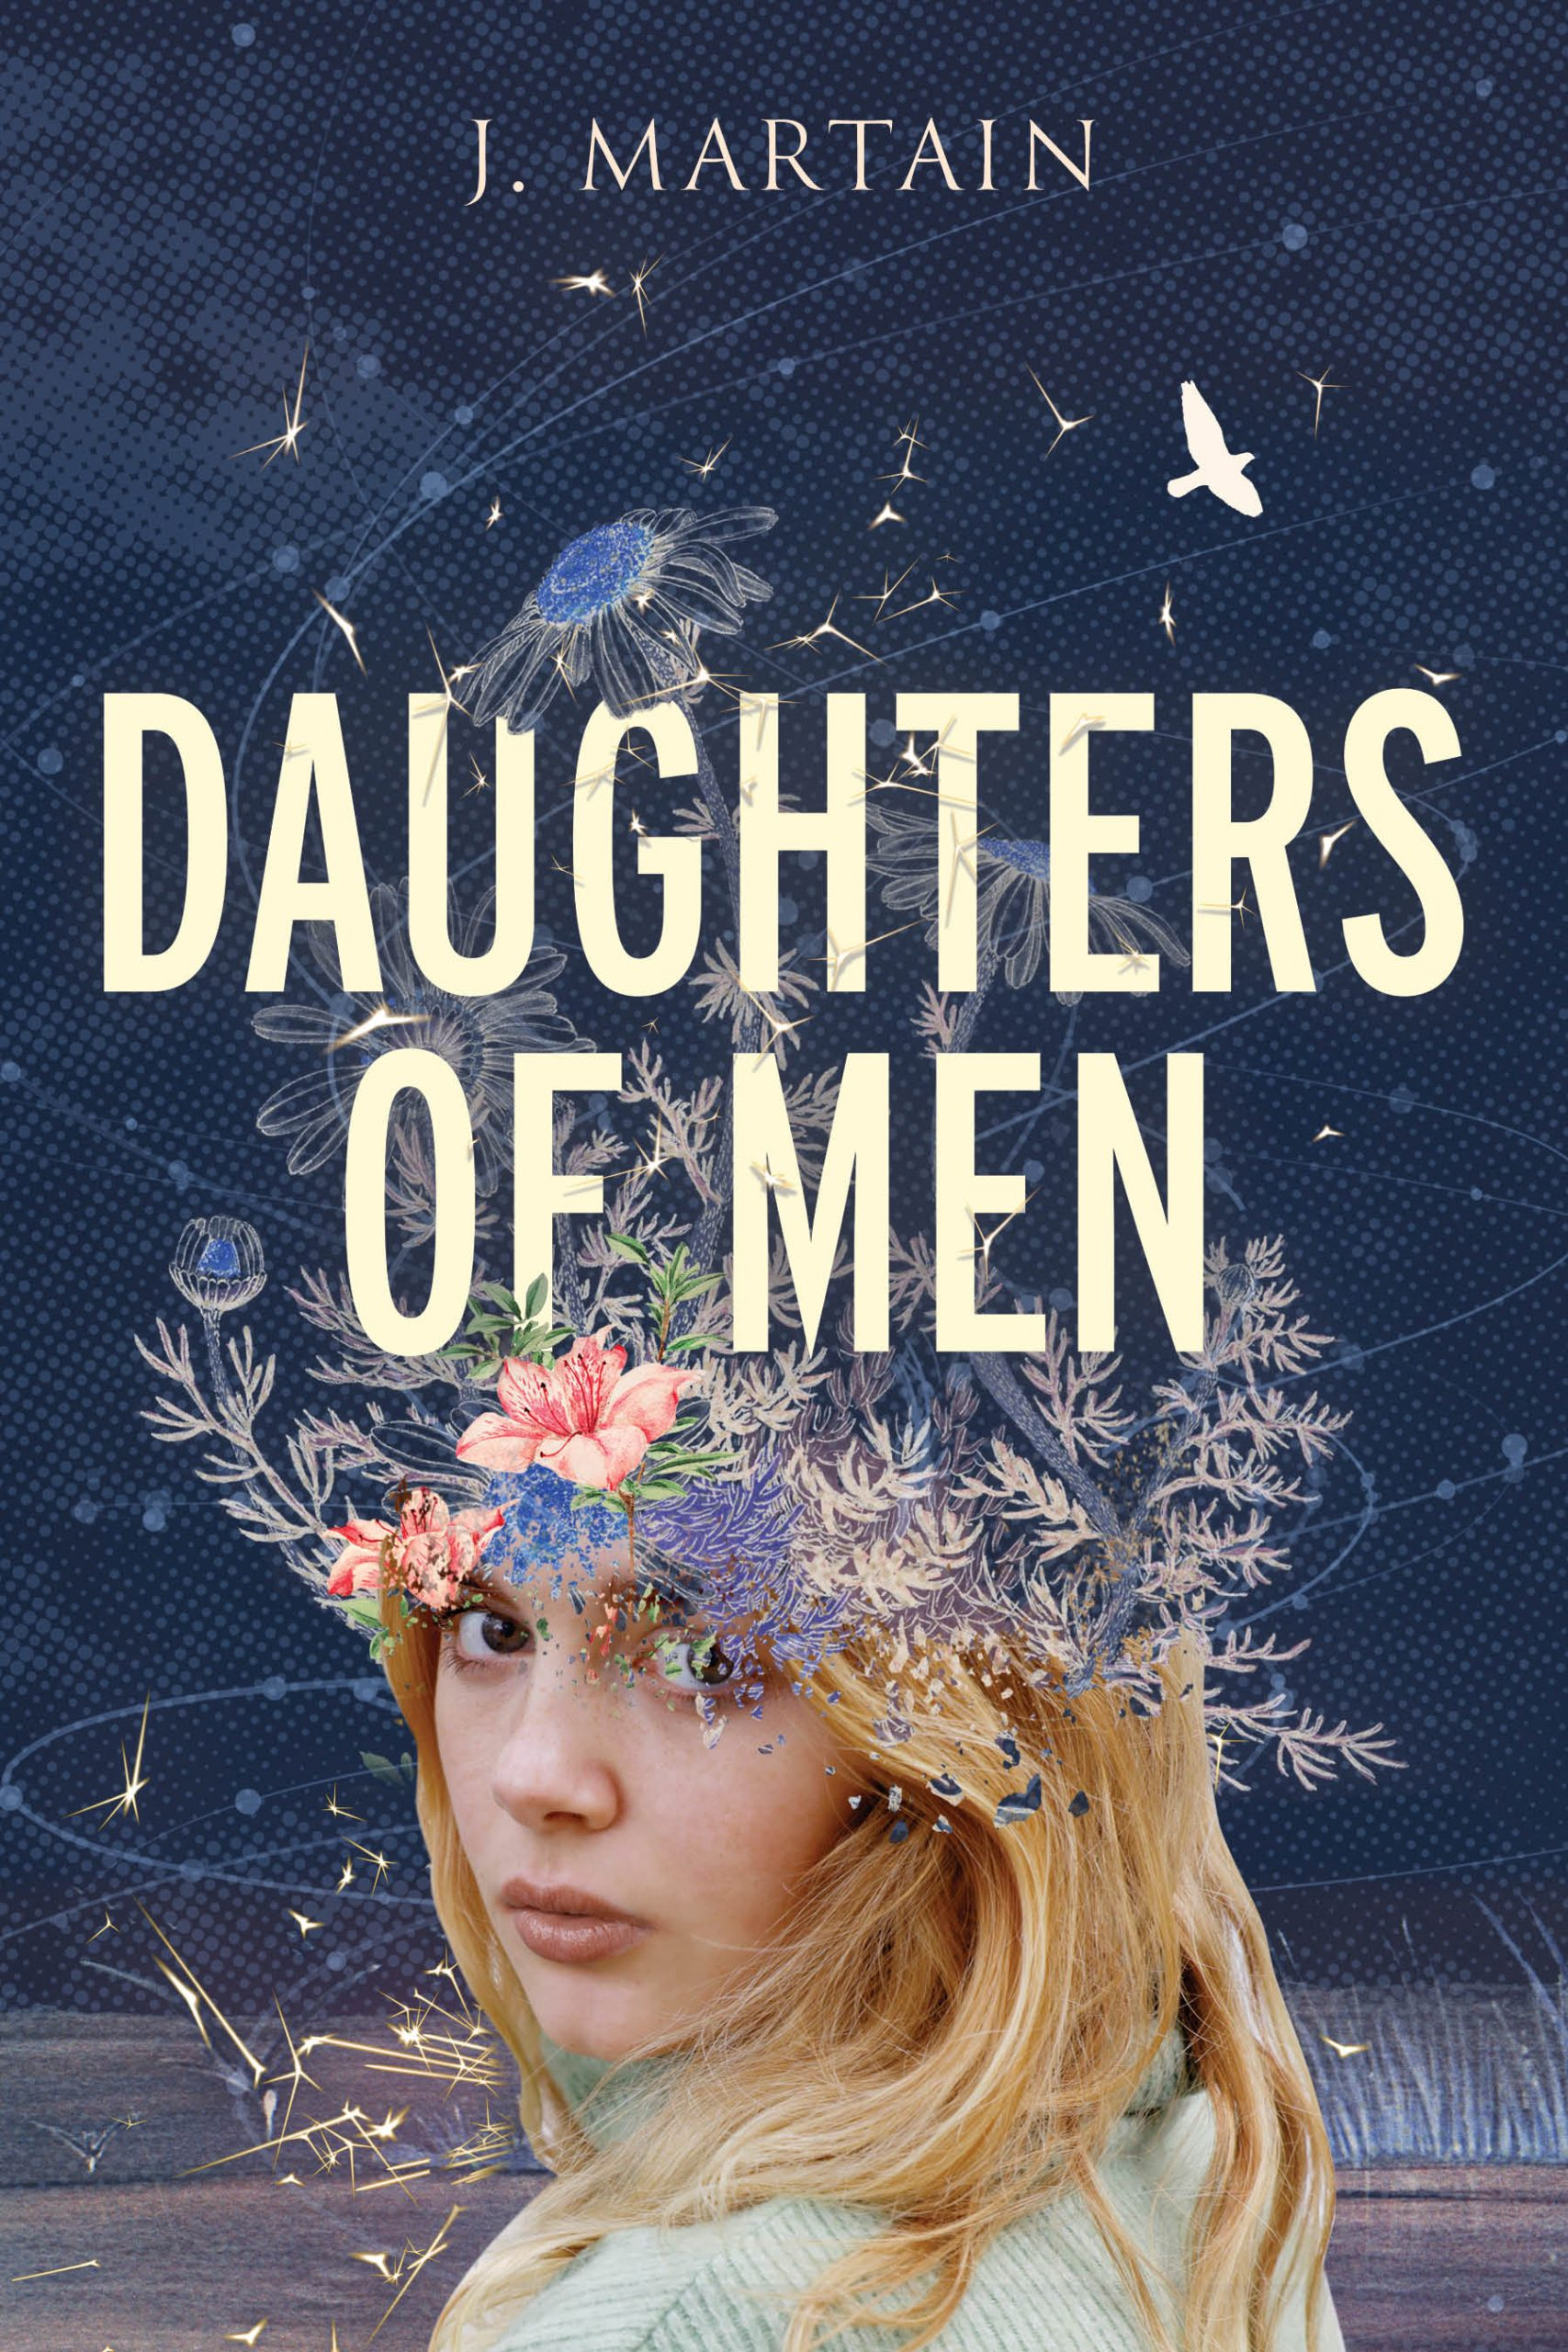 cover image Daughters of Men speculative fiction novel by J Martain